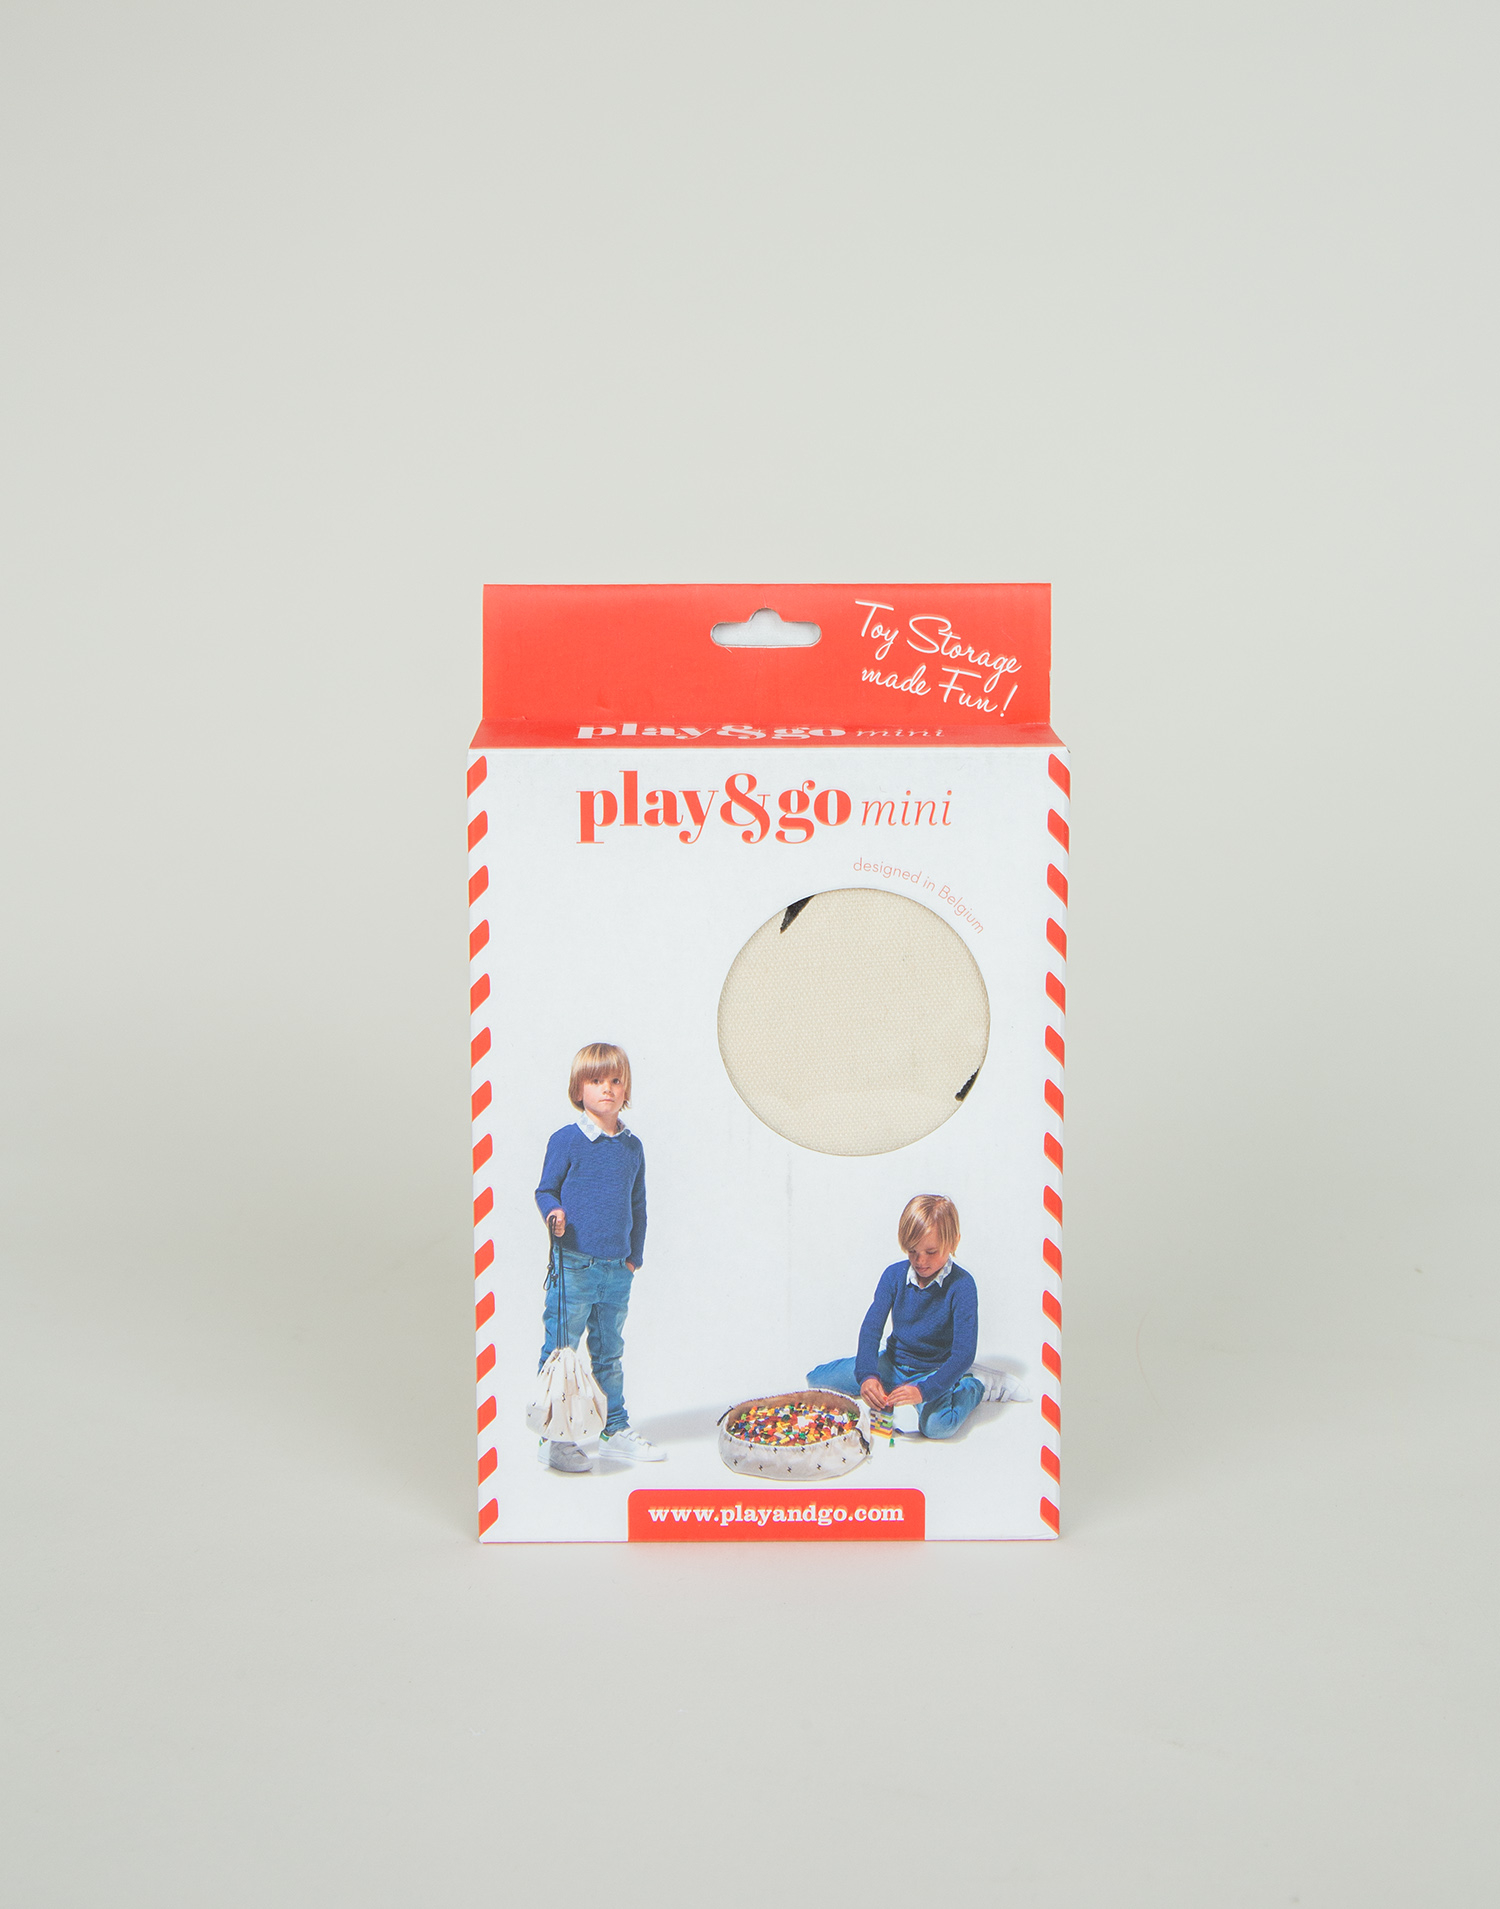 Play&go mini bag